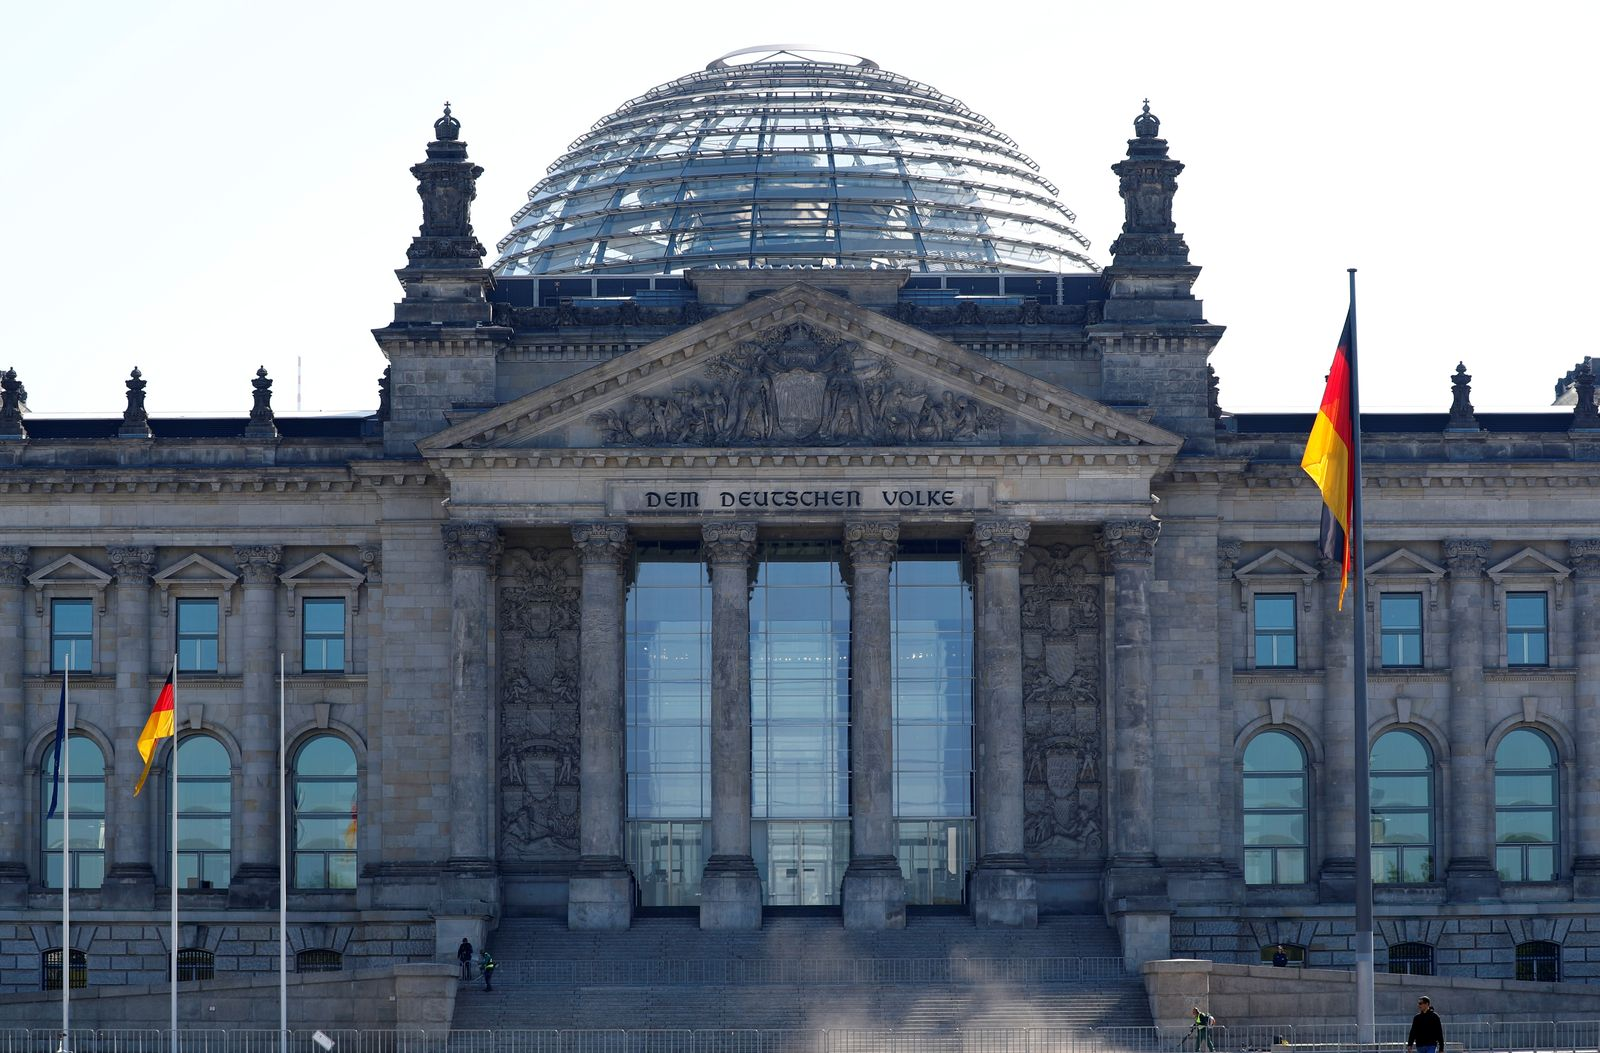 Battle of Berlin traces around the city on its 75th anniversary